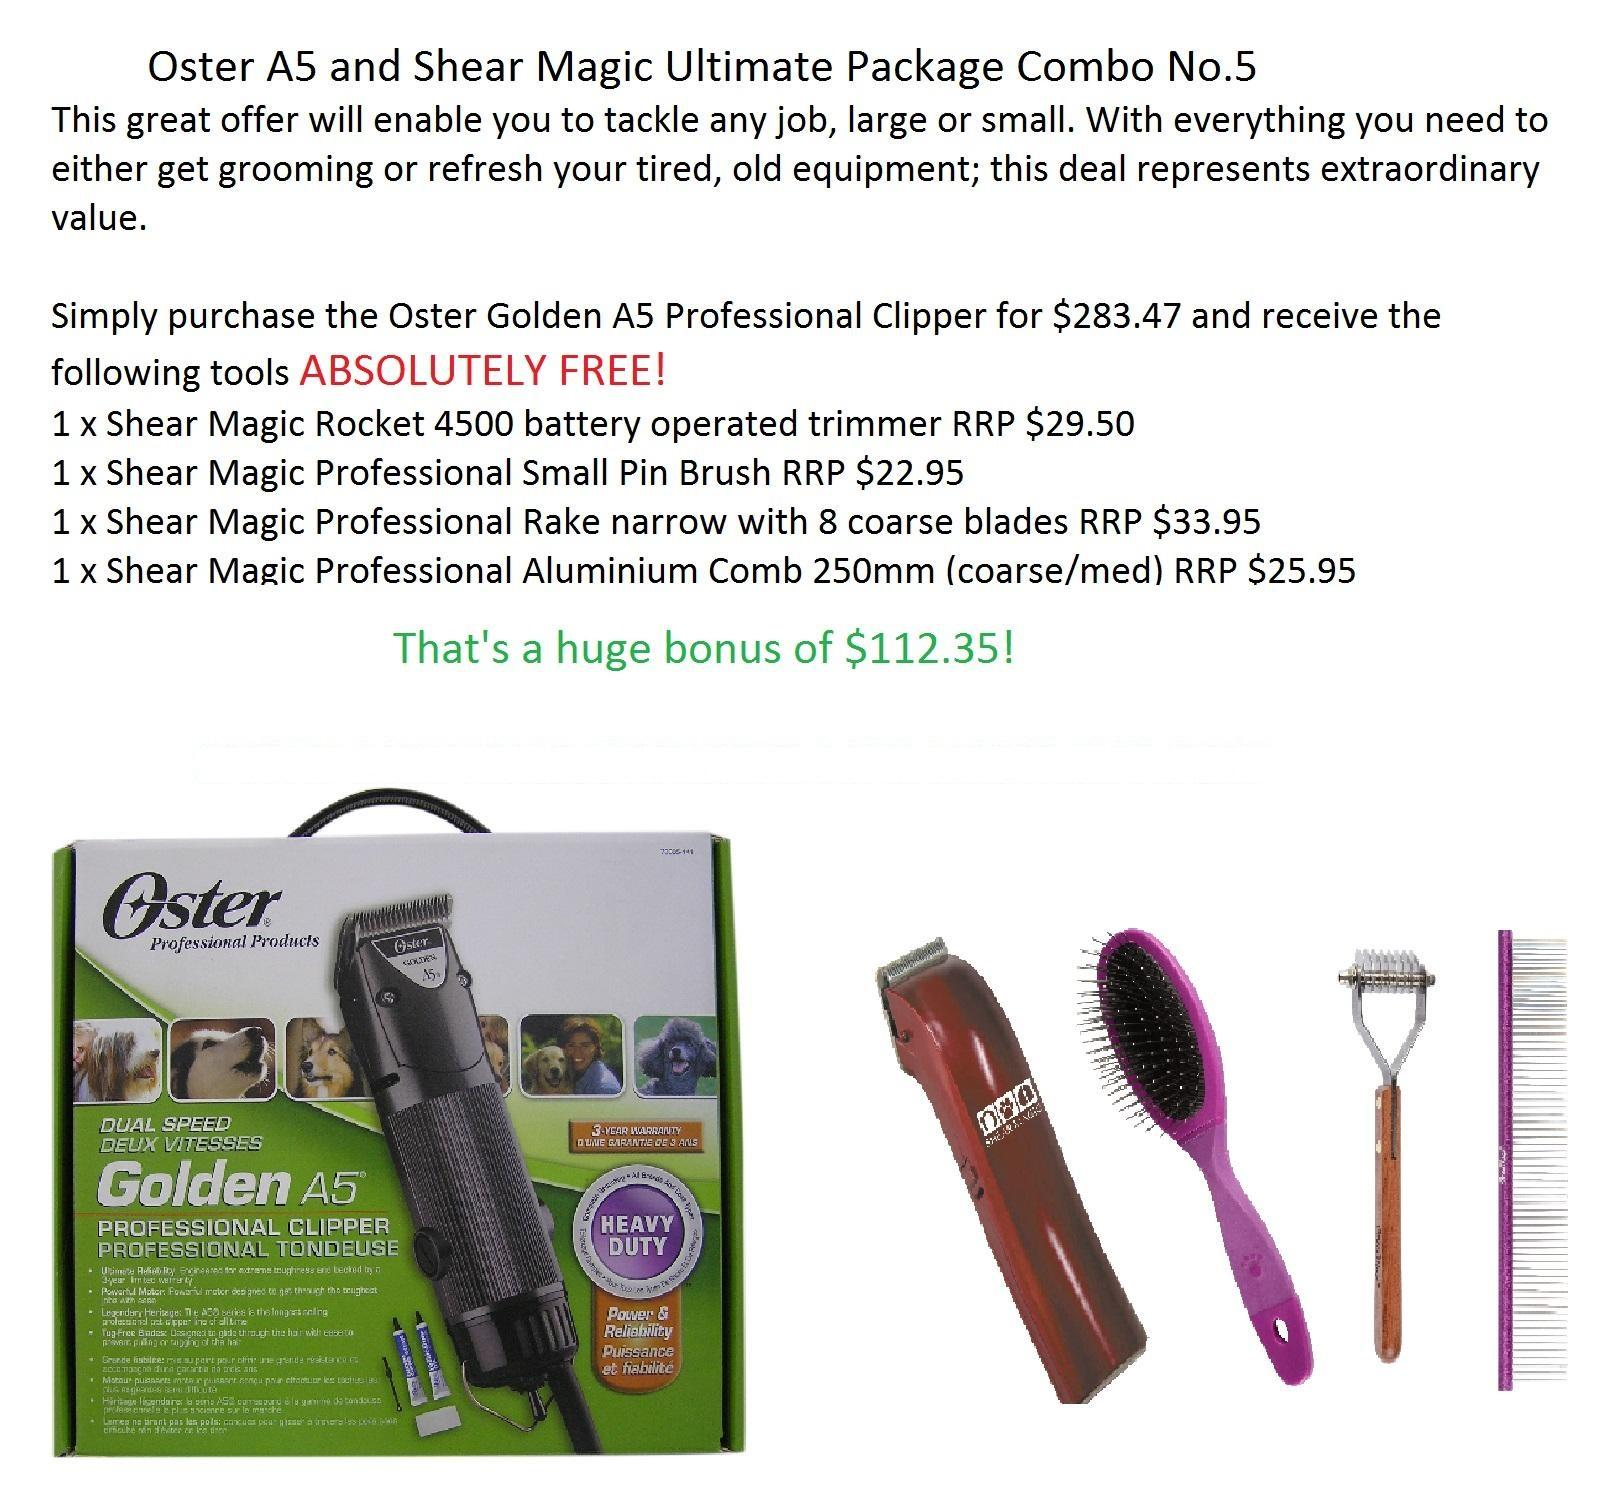 Oster A5 and Shear Magic Ultimate Package Combo No.5